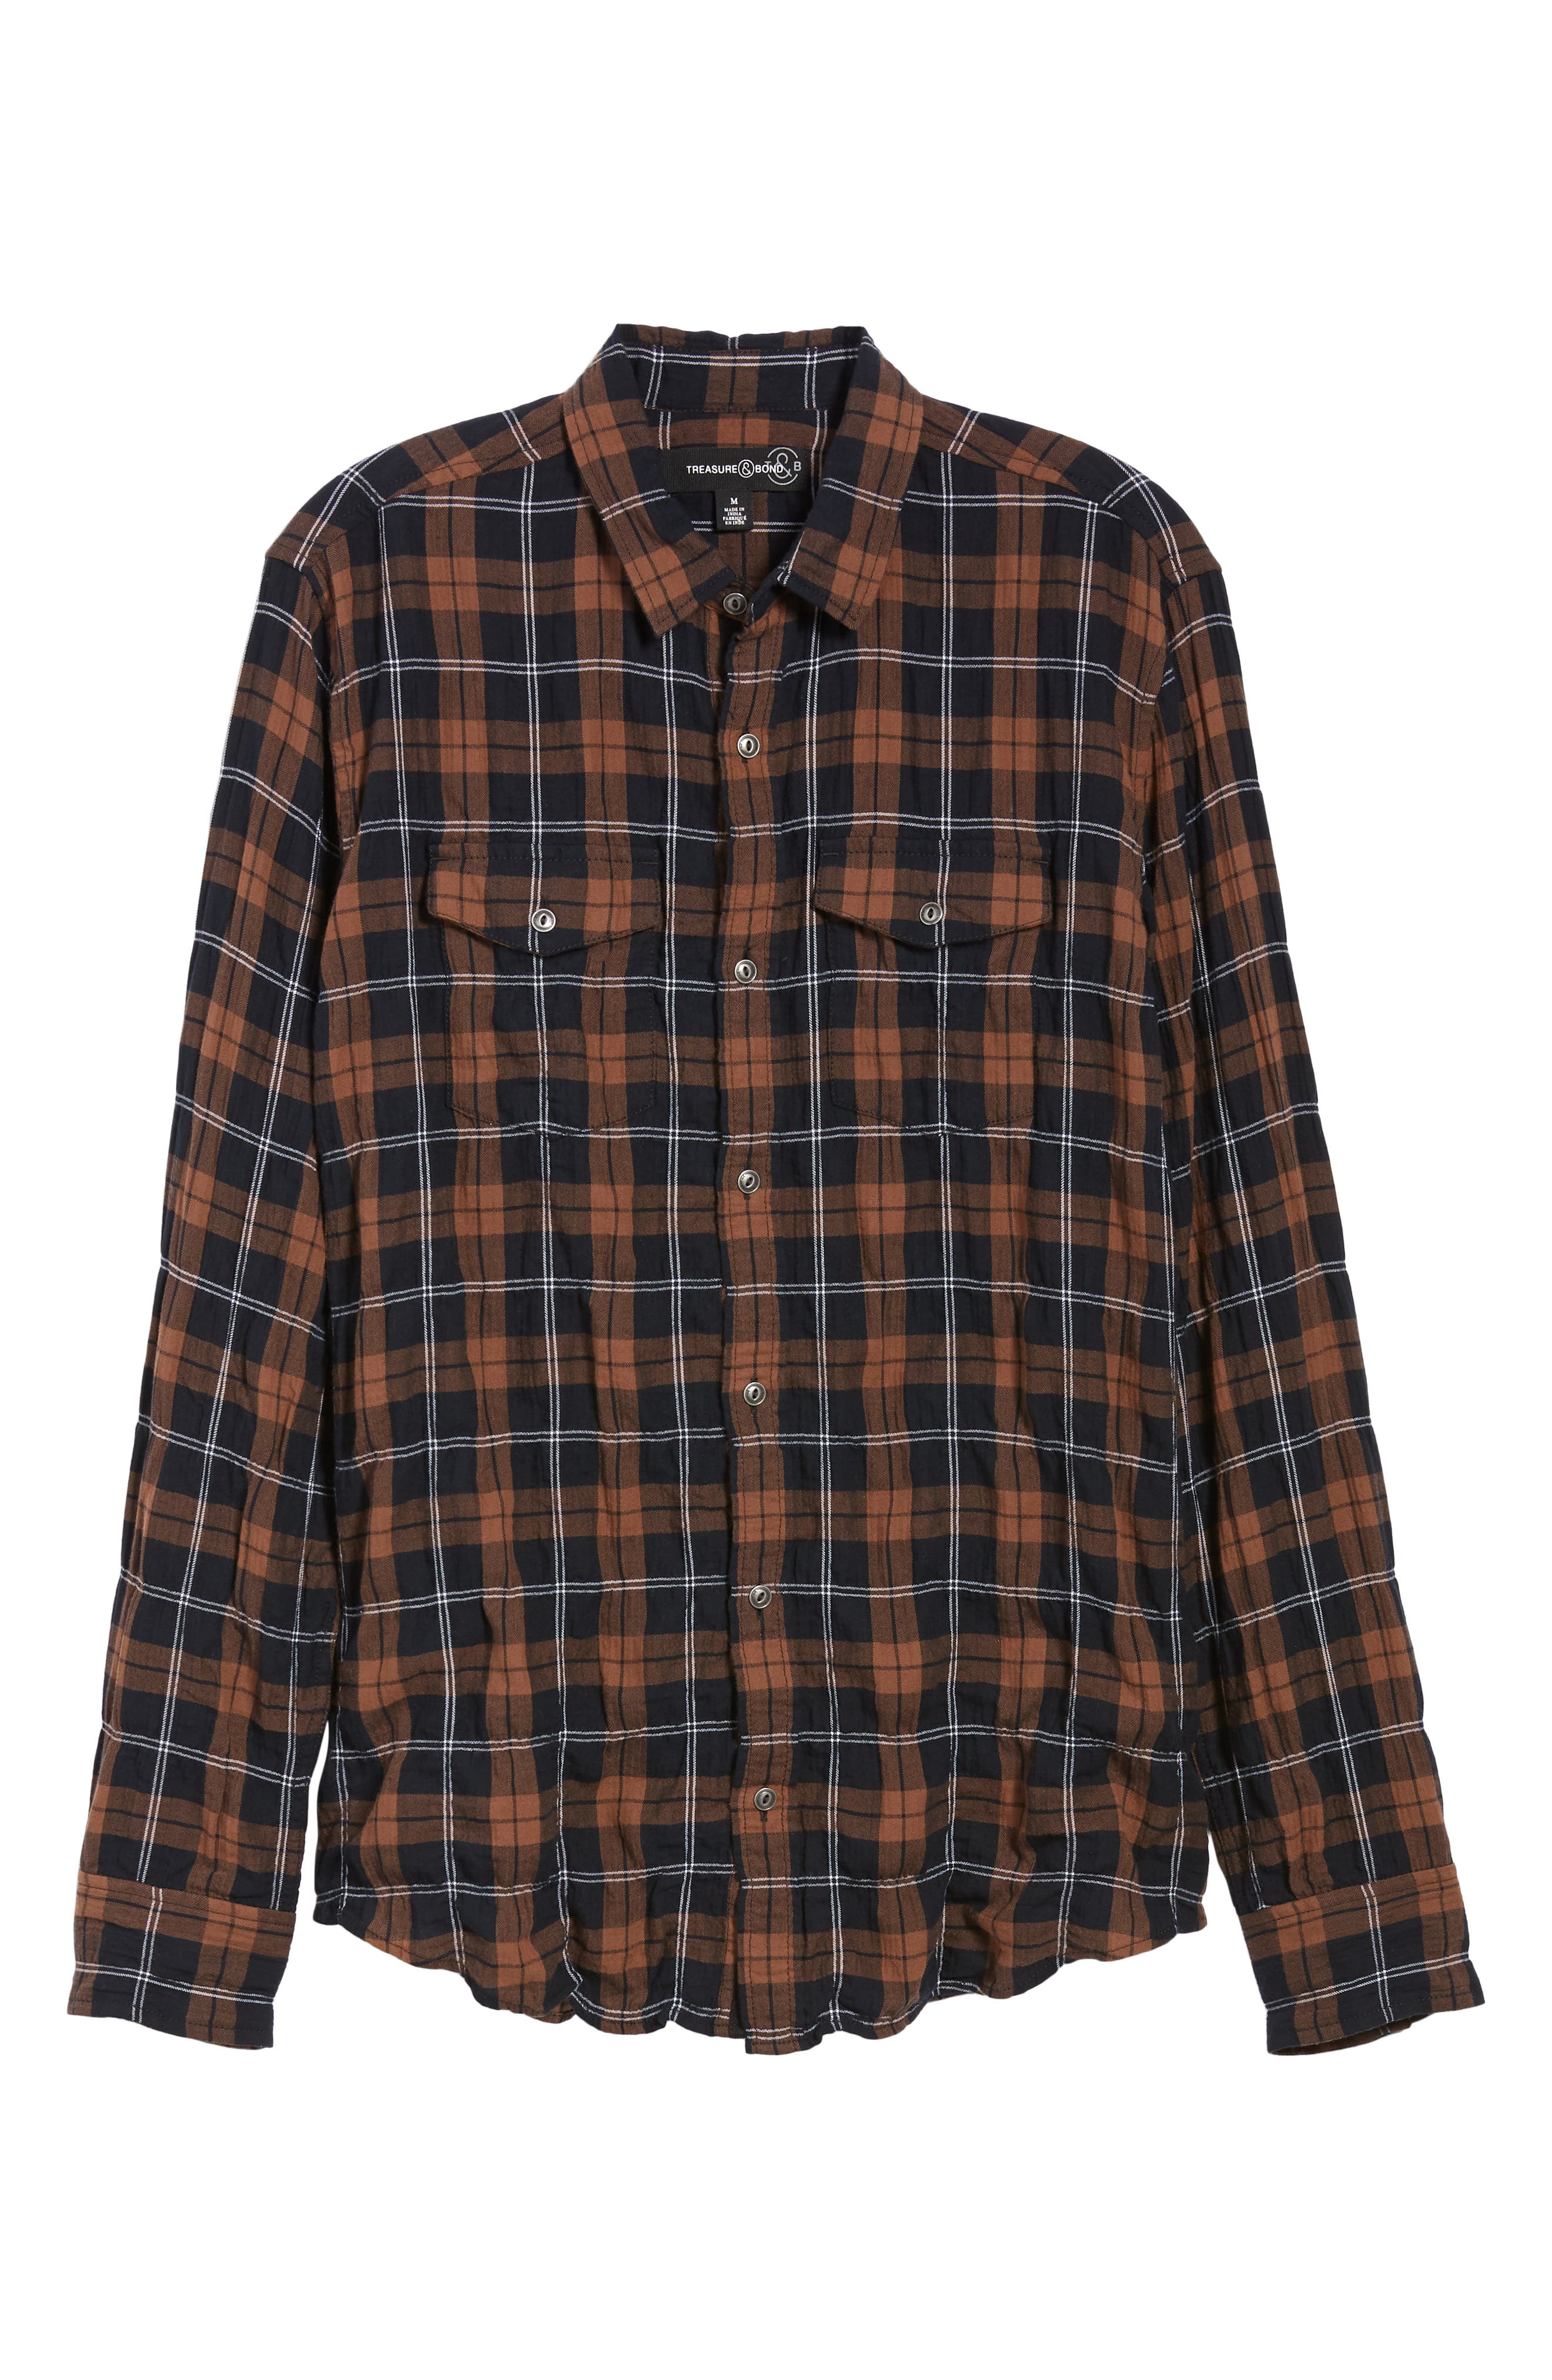 Regular Fit Plaid Sport Shirt,                             Alternate thumbnail 6, color,                             BLACK BROWN SMITH PLAID